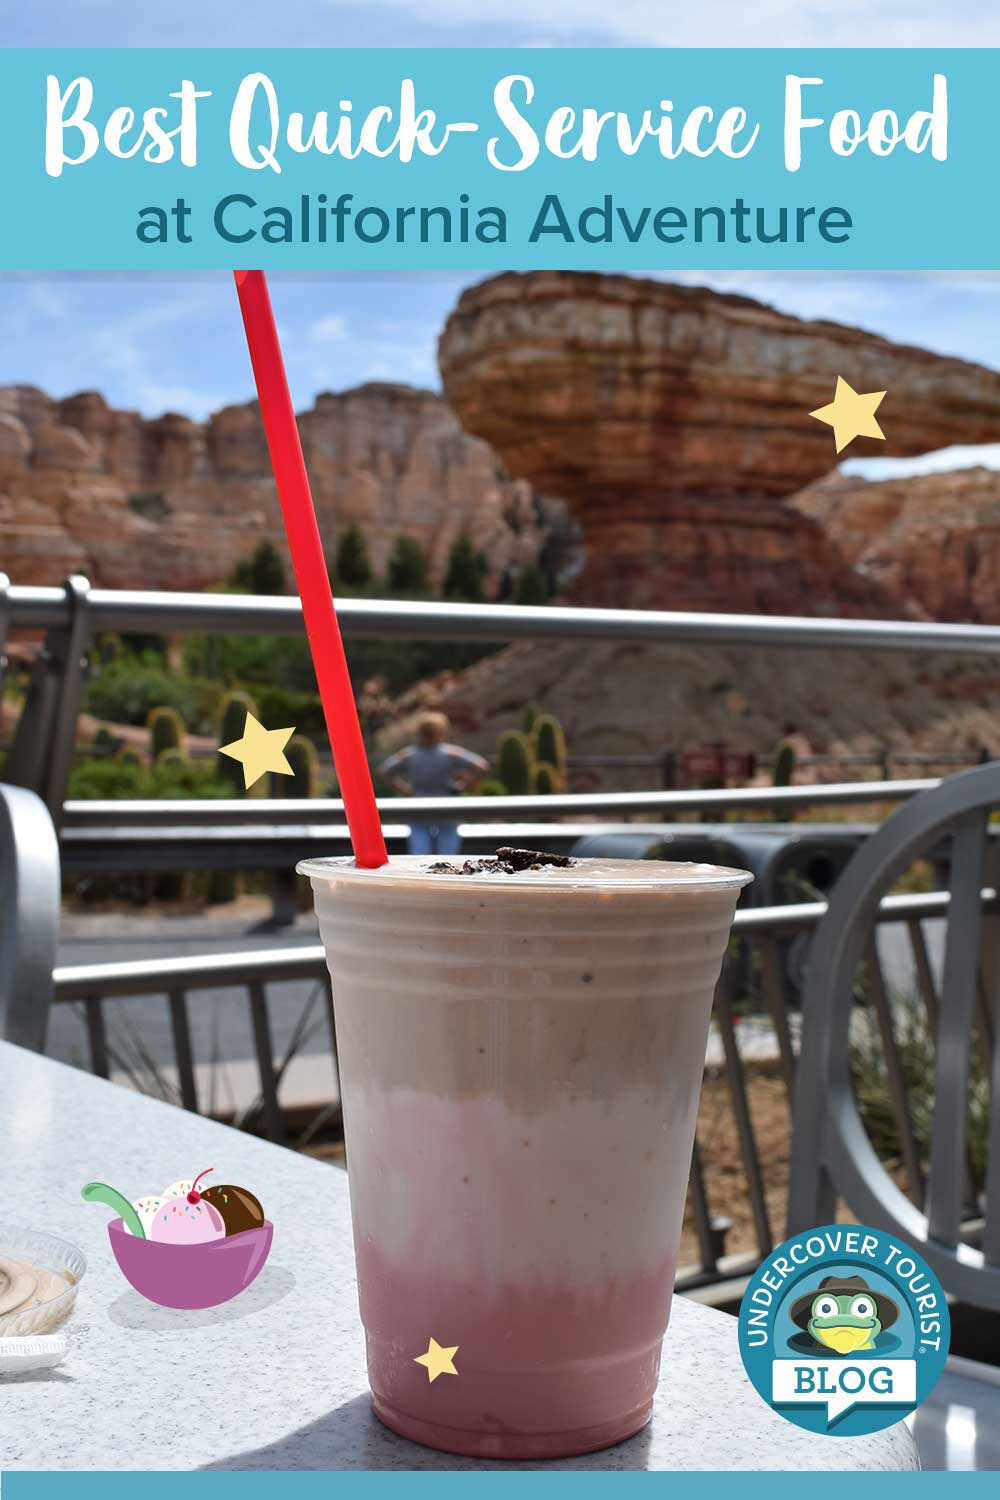 Disney California Adventure Quick-Service - Cars Milkshake